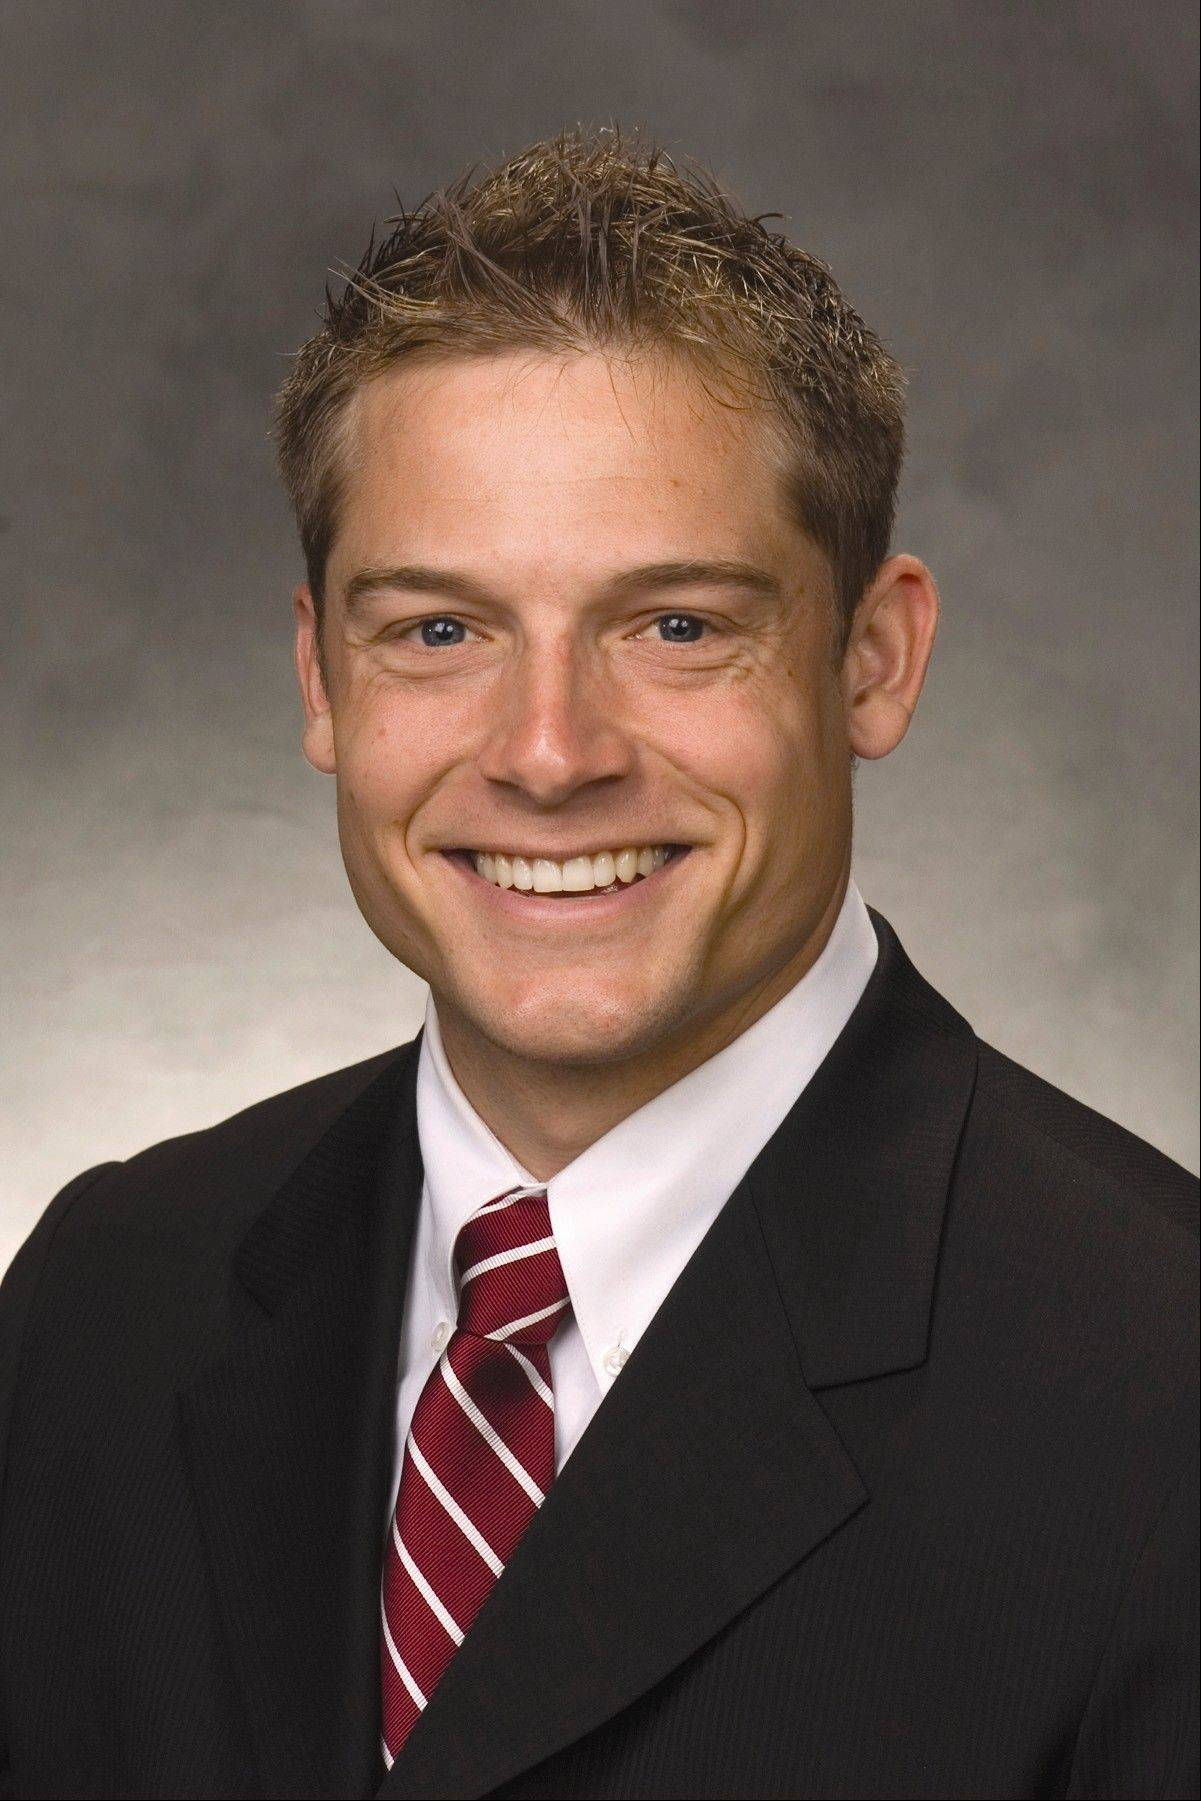 Former Kaneland High School and NIU football player P.J. Fleck is the new head football coach at Western Michigan University. Fleck was the receivers coach for the Tampa Bay Bucs.